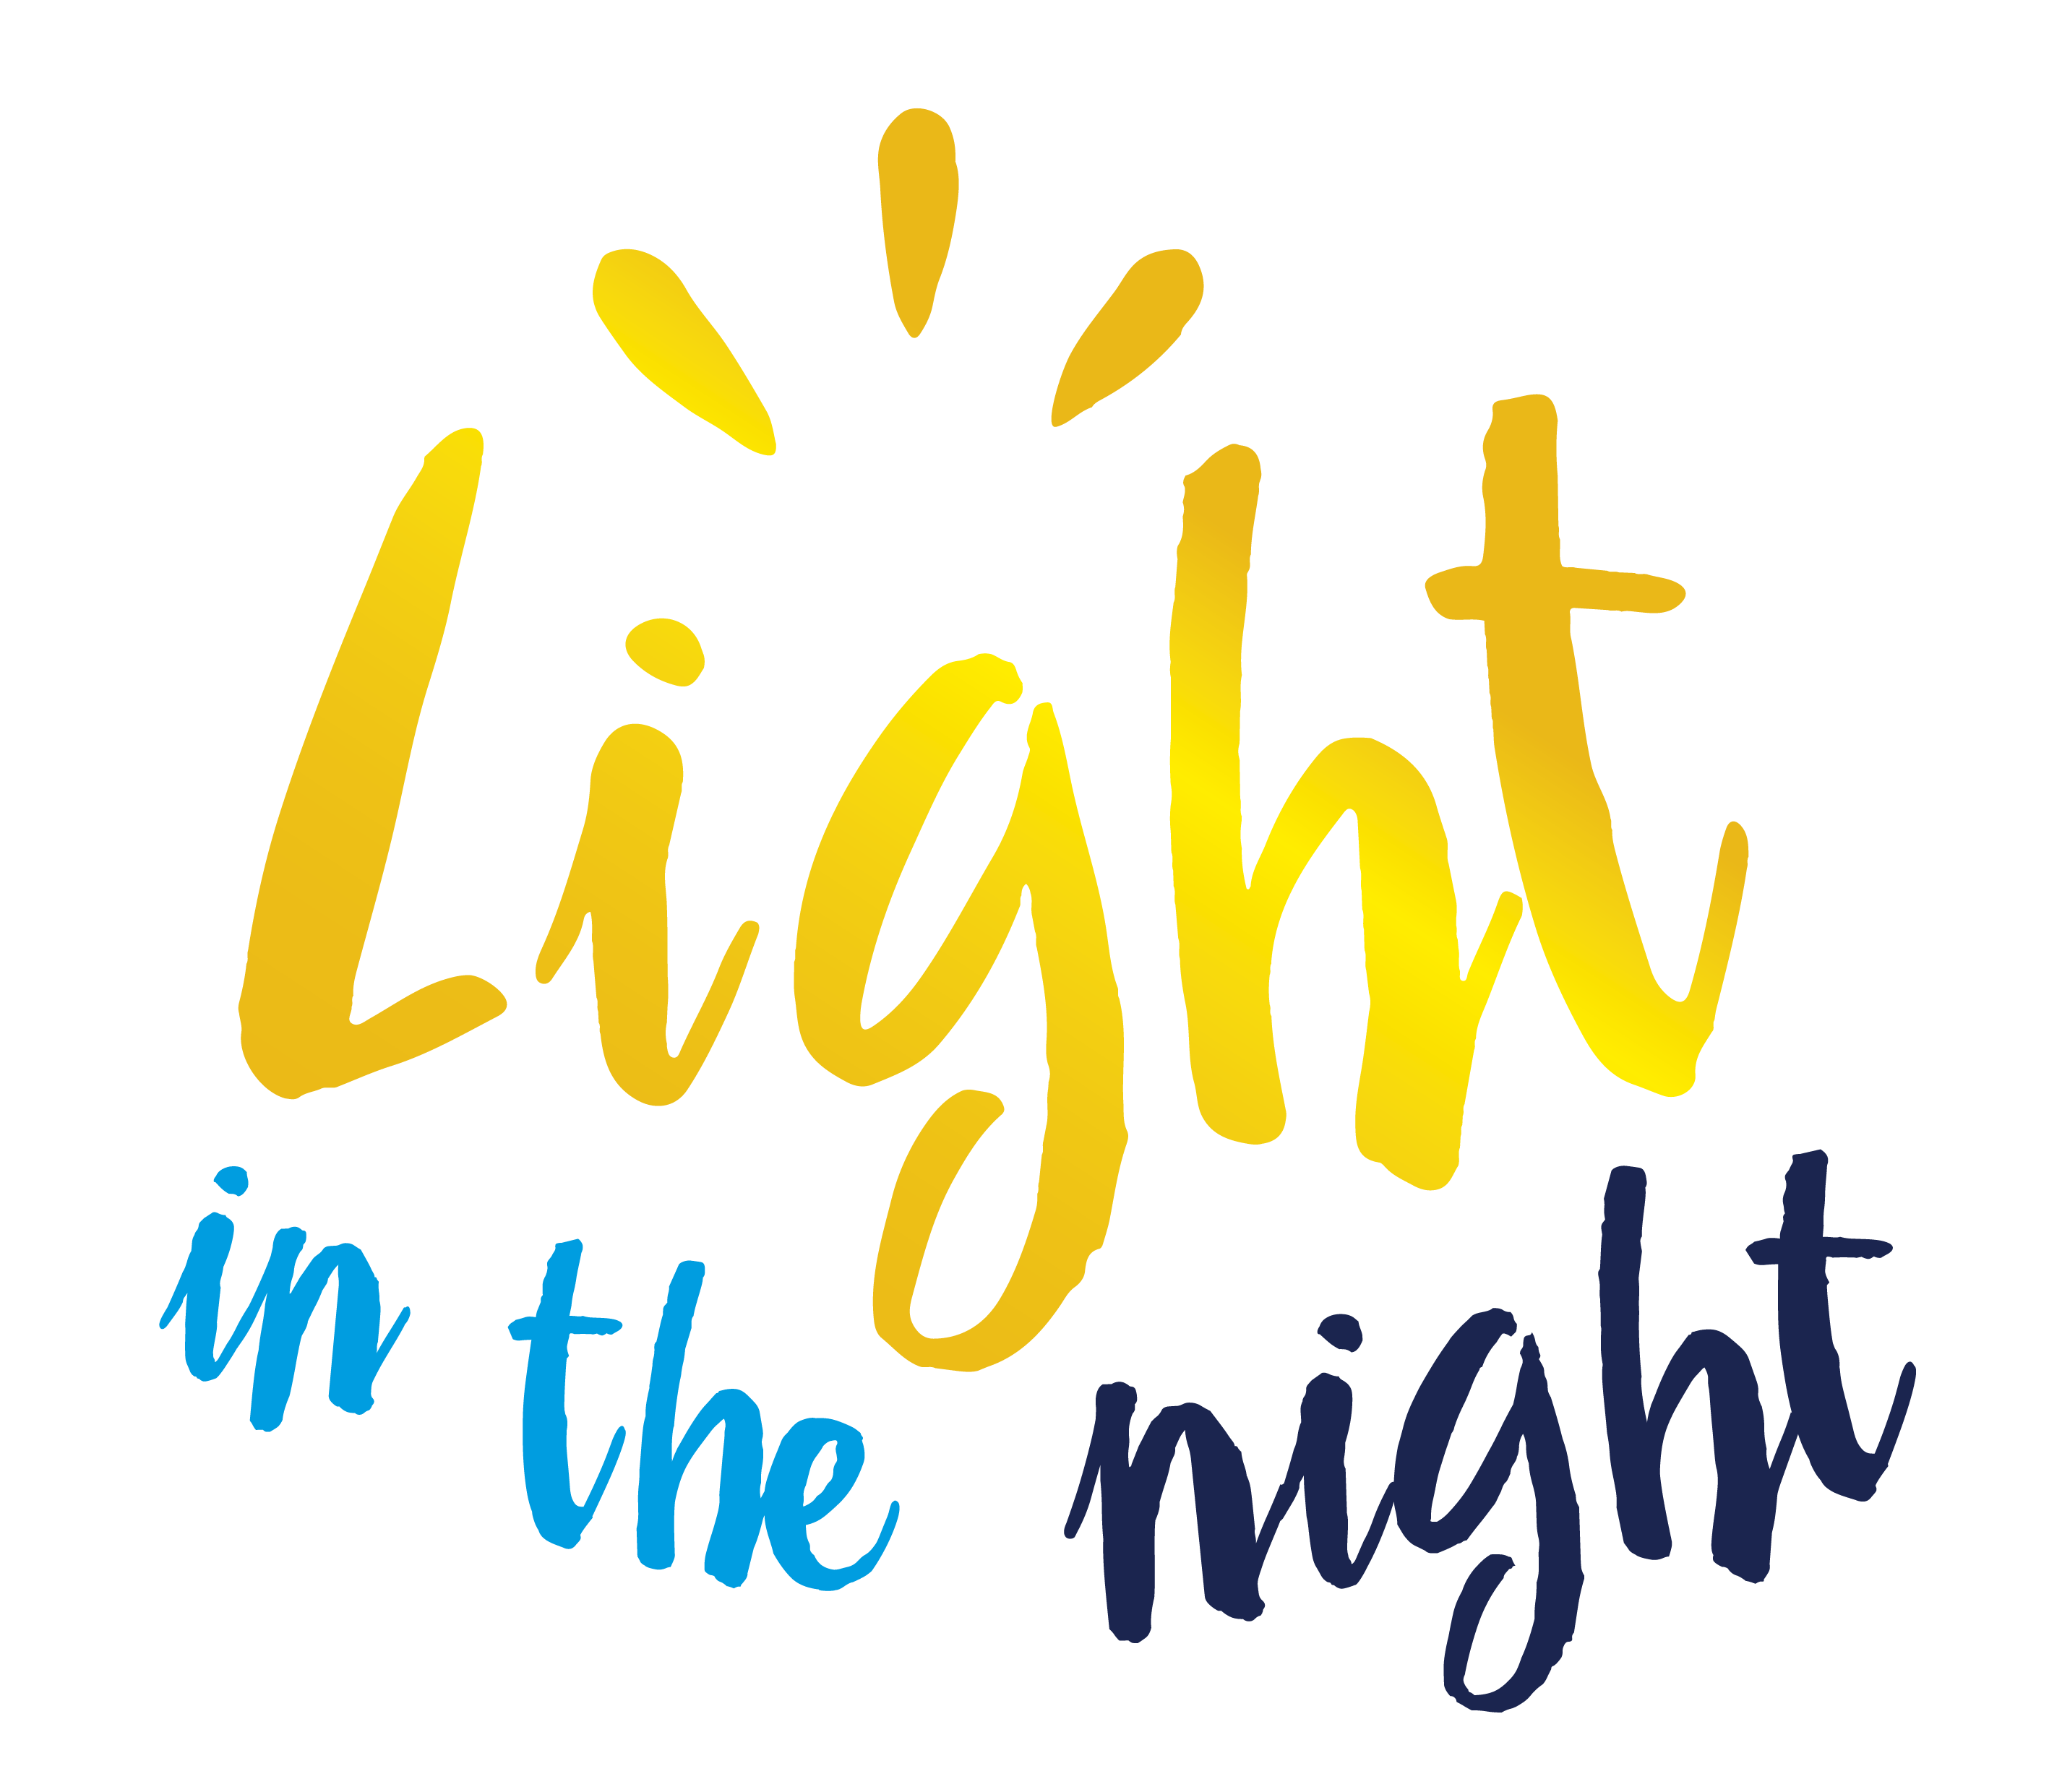 Light in the night logo